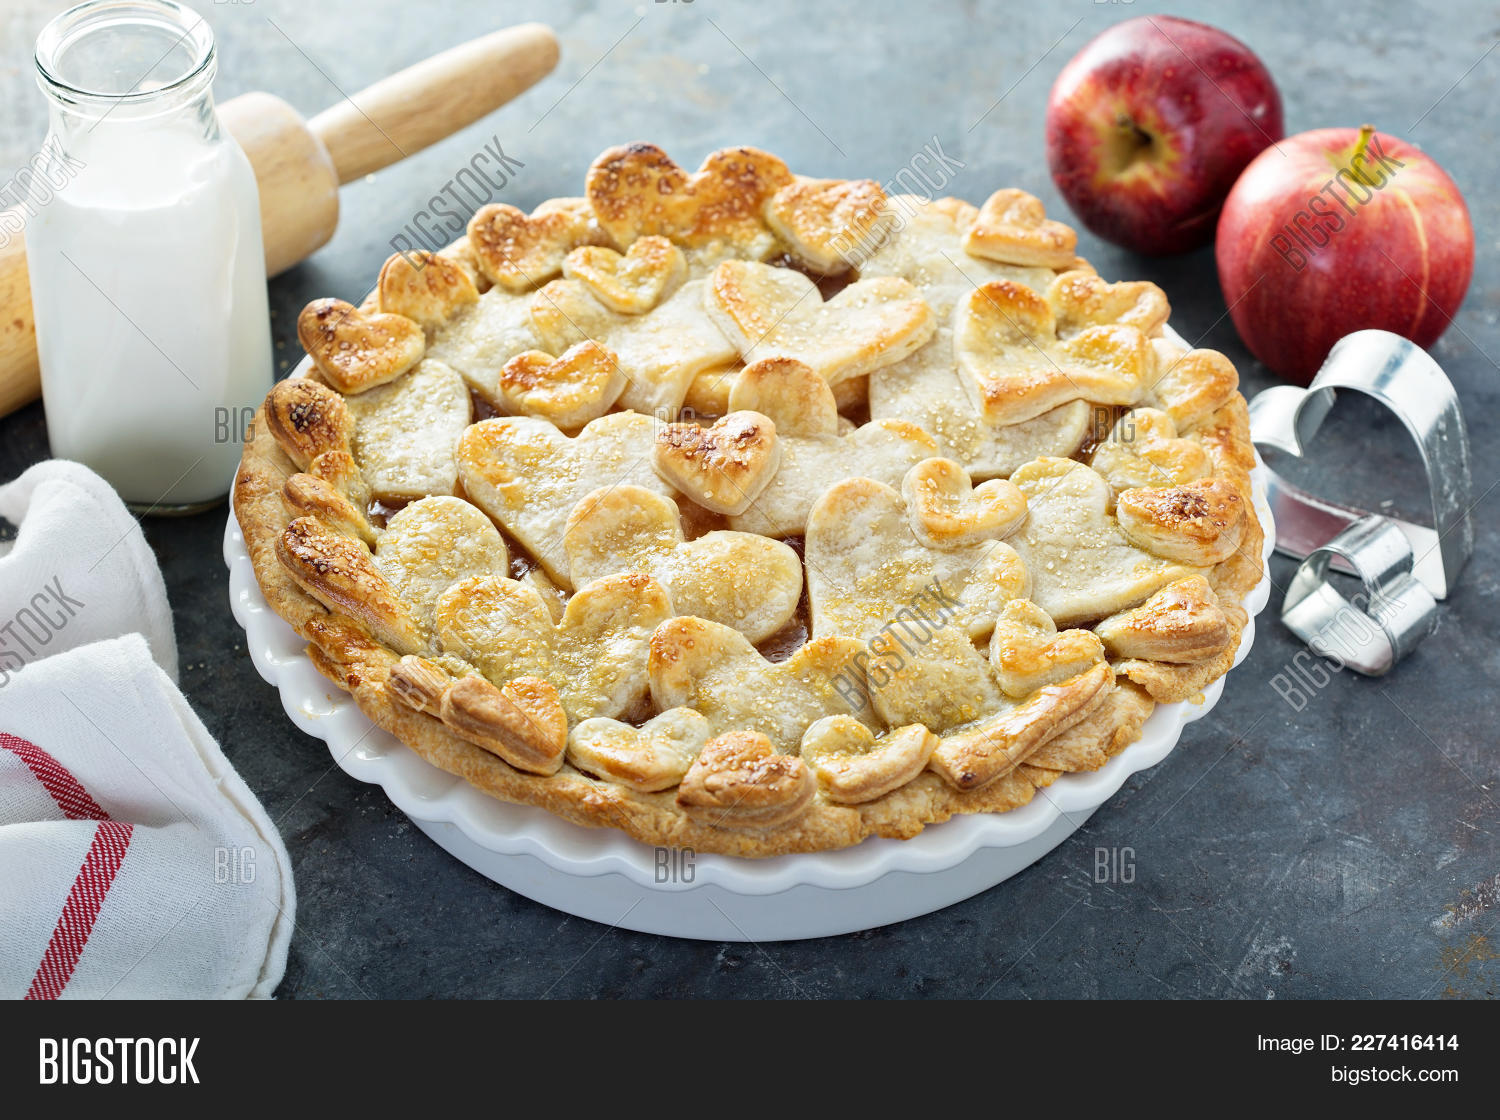 Preparation apple pie with hearts powerpoint template preparation y toneelgroepblik Image collections